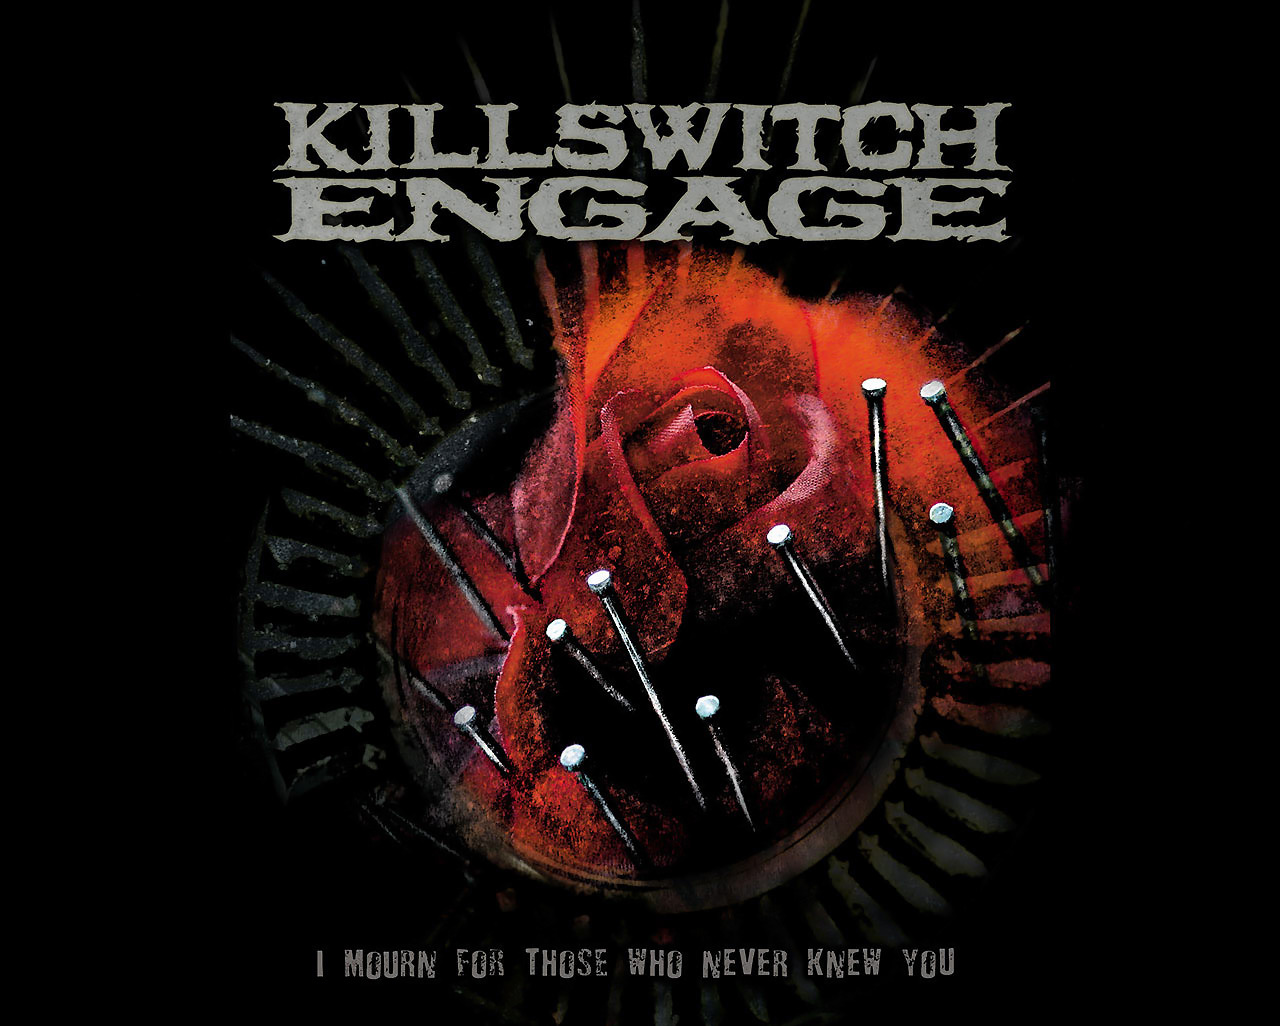 killswitch engage copy FTW HD Wallpaper